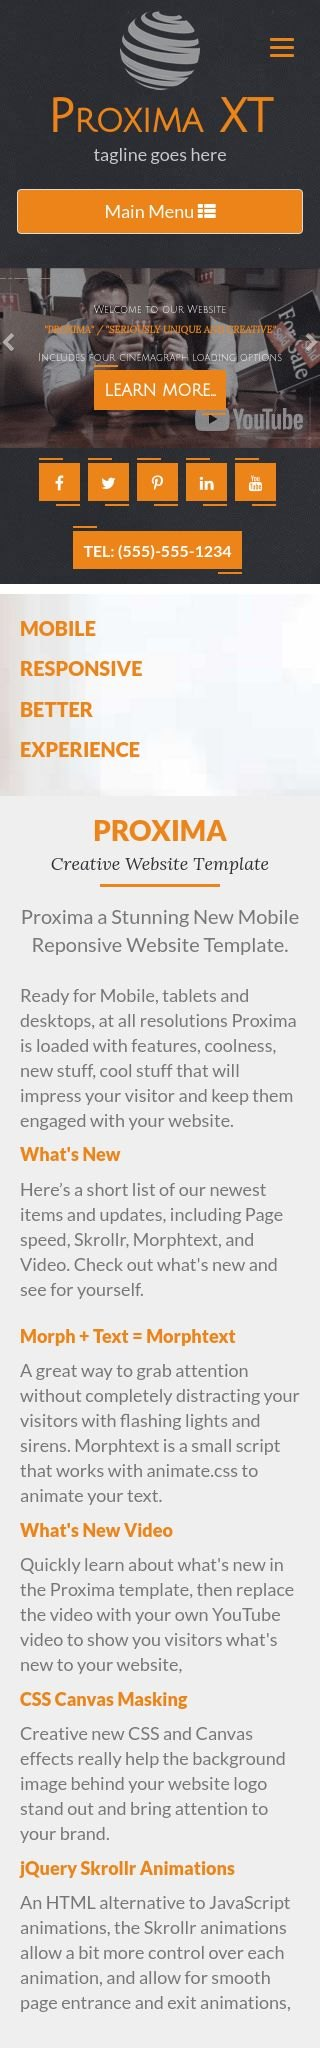 Mobile: Real-estate Web Template